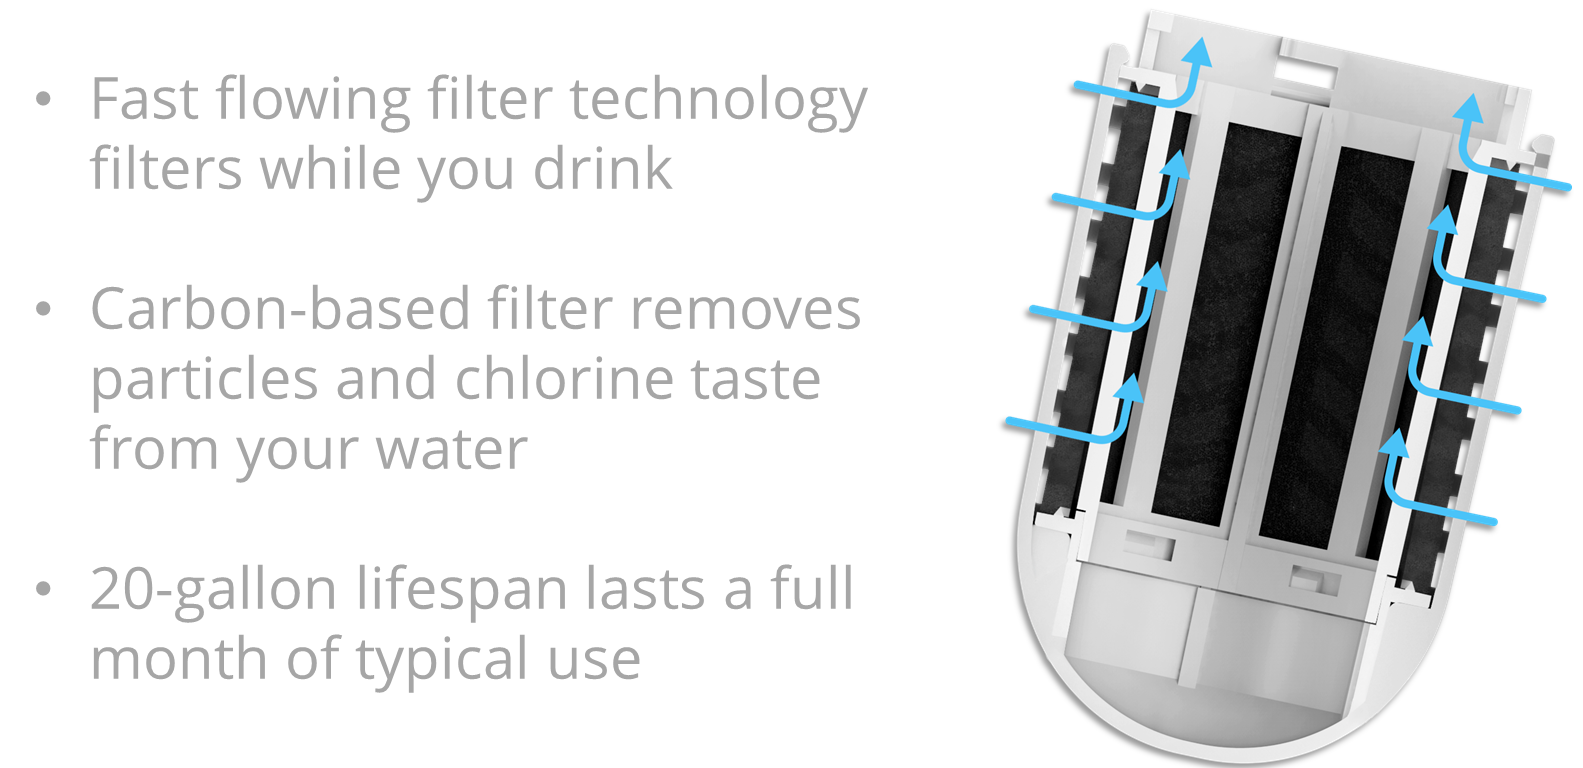 Fast flowing filter technology filters while you drink. Carbon-based filter removes particles and chlorine taste from your water. 30-gallon lifespan lasts a full month of typical use.